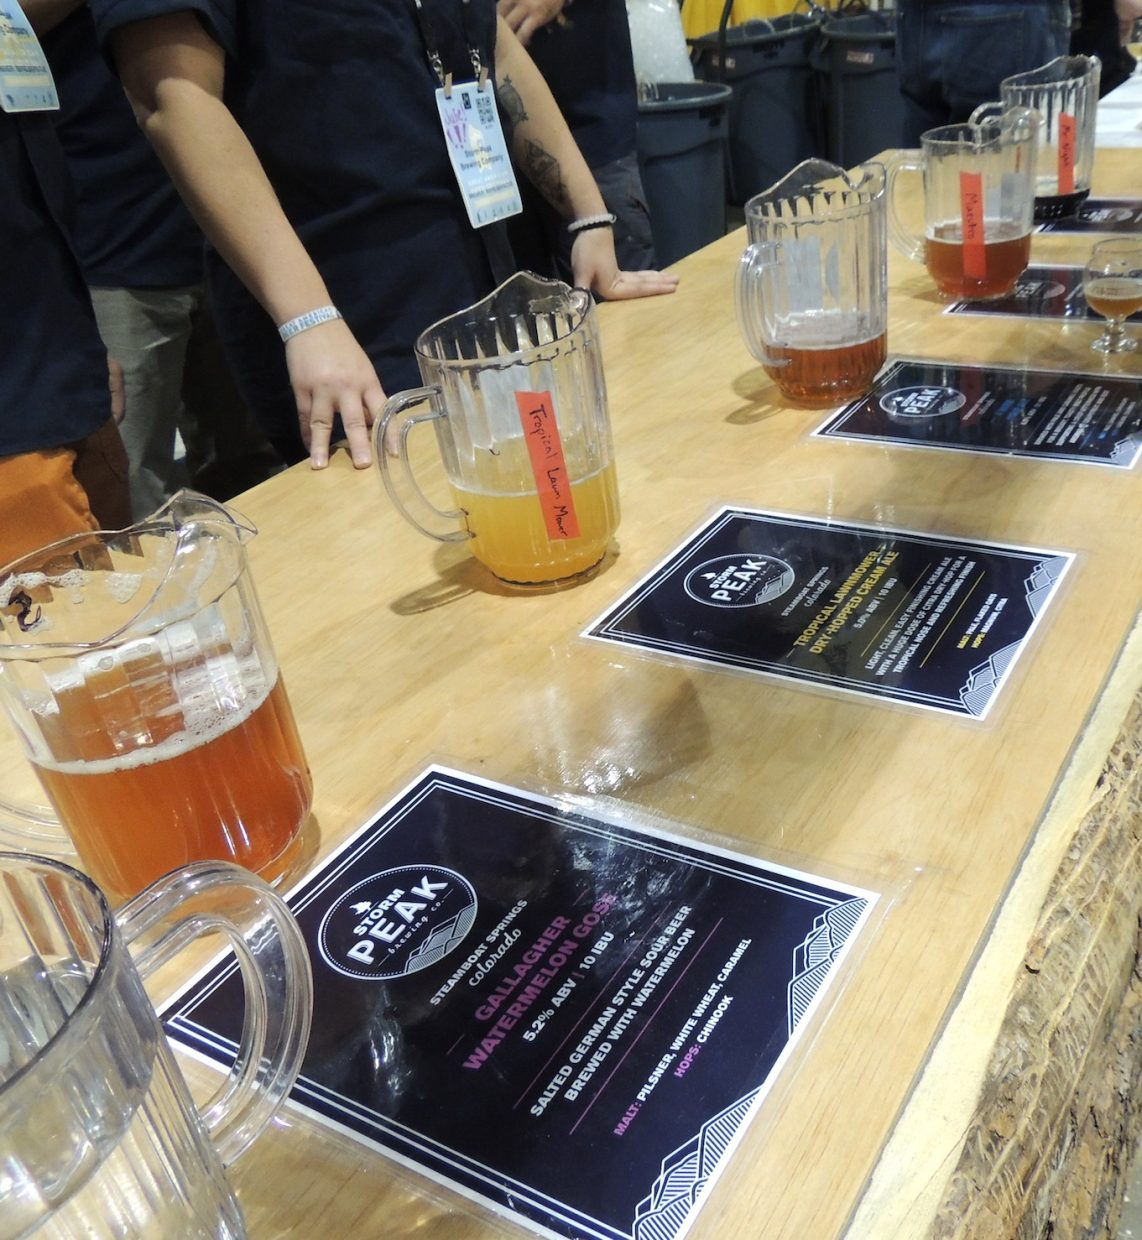 Steamboat Springs' Storm Peak Brewing Co. served up five beers at the Great American Beer Festival.